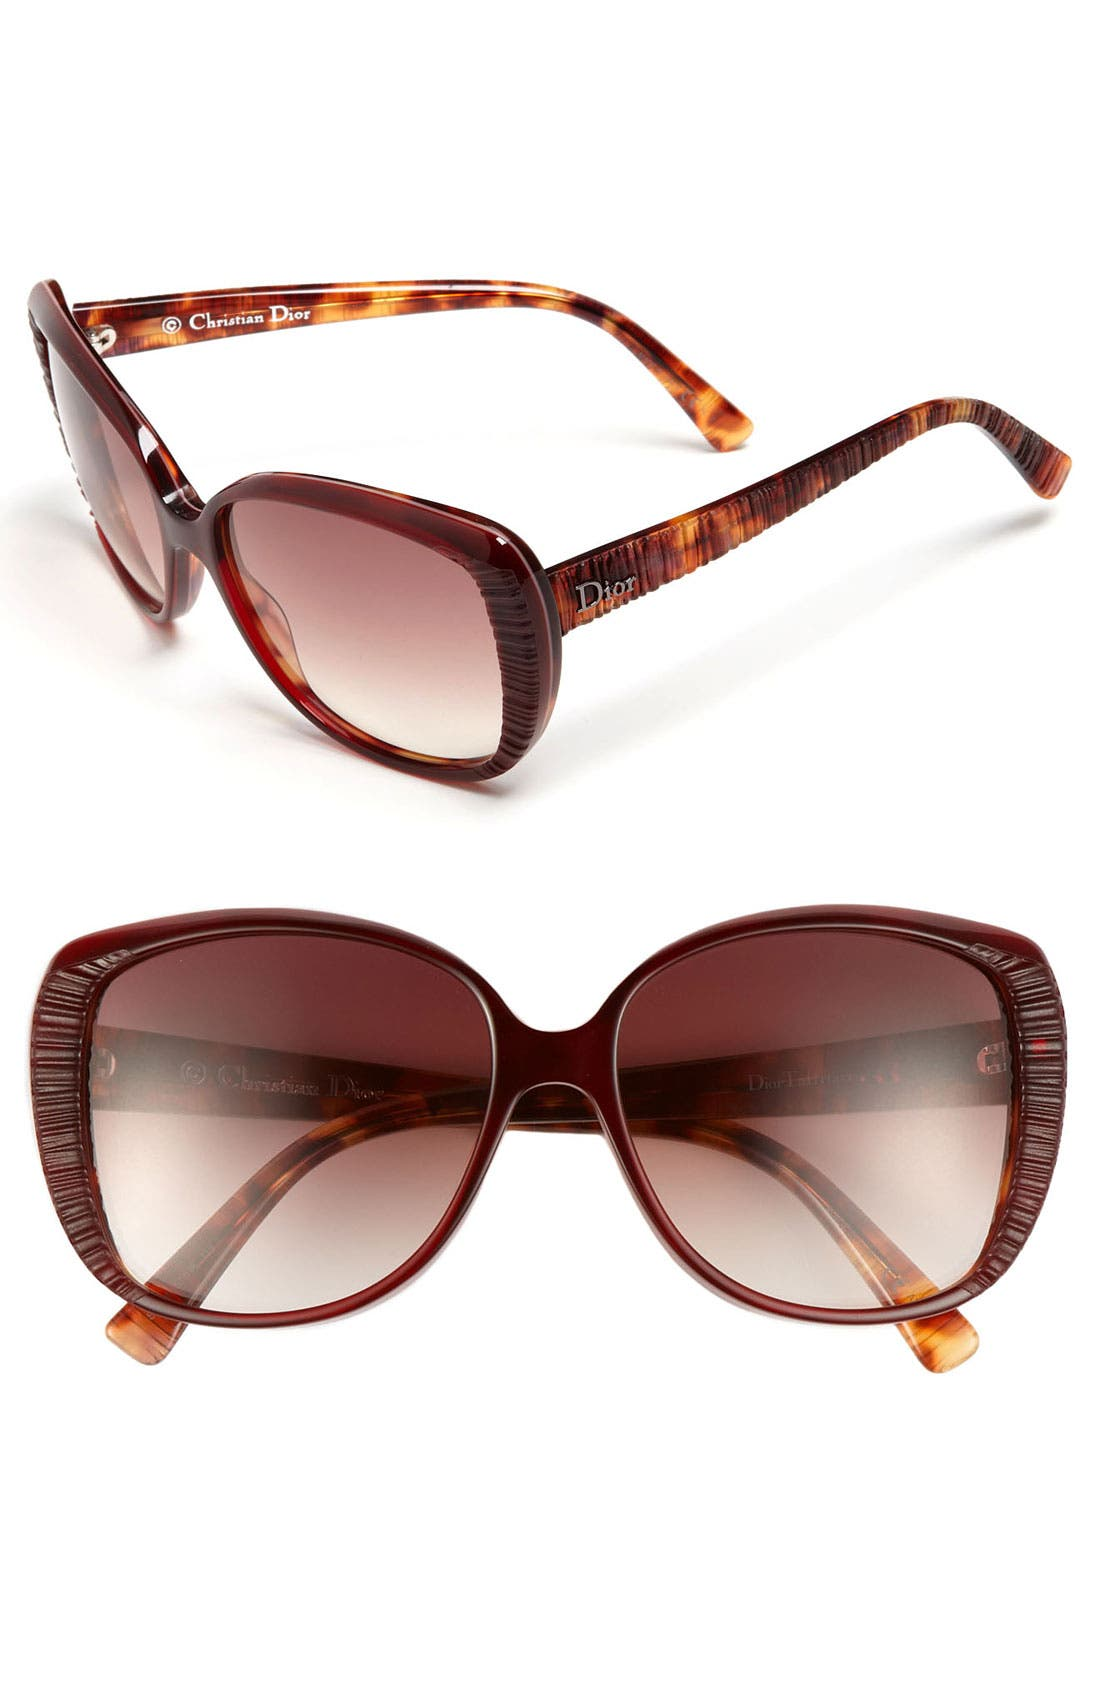 Main Image - Dior 'Taffetas 2' 57mm Sunglasses